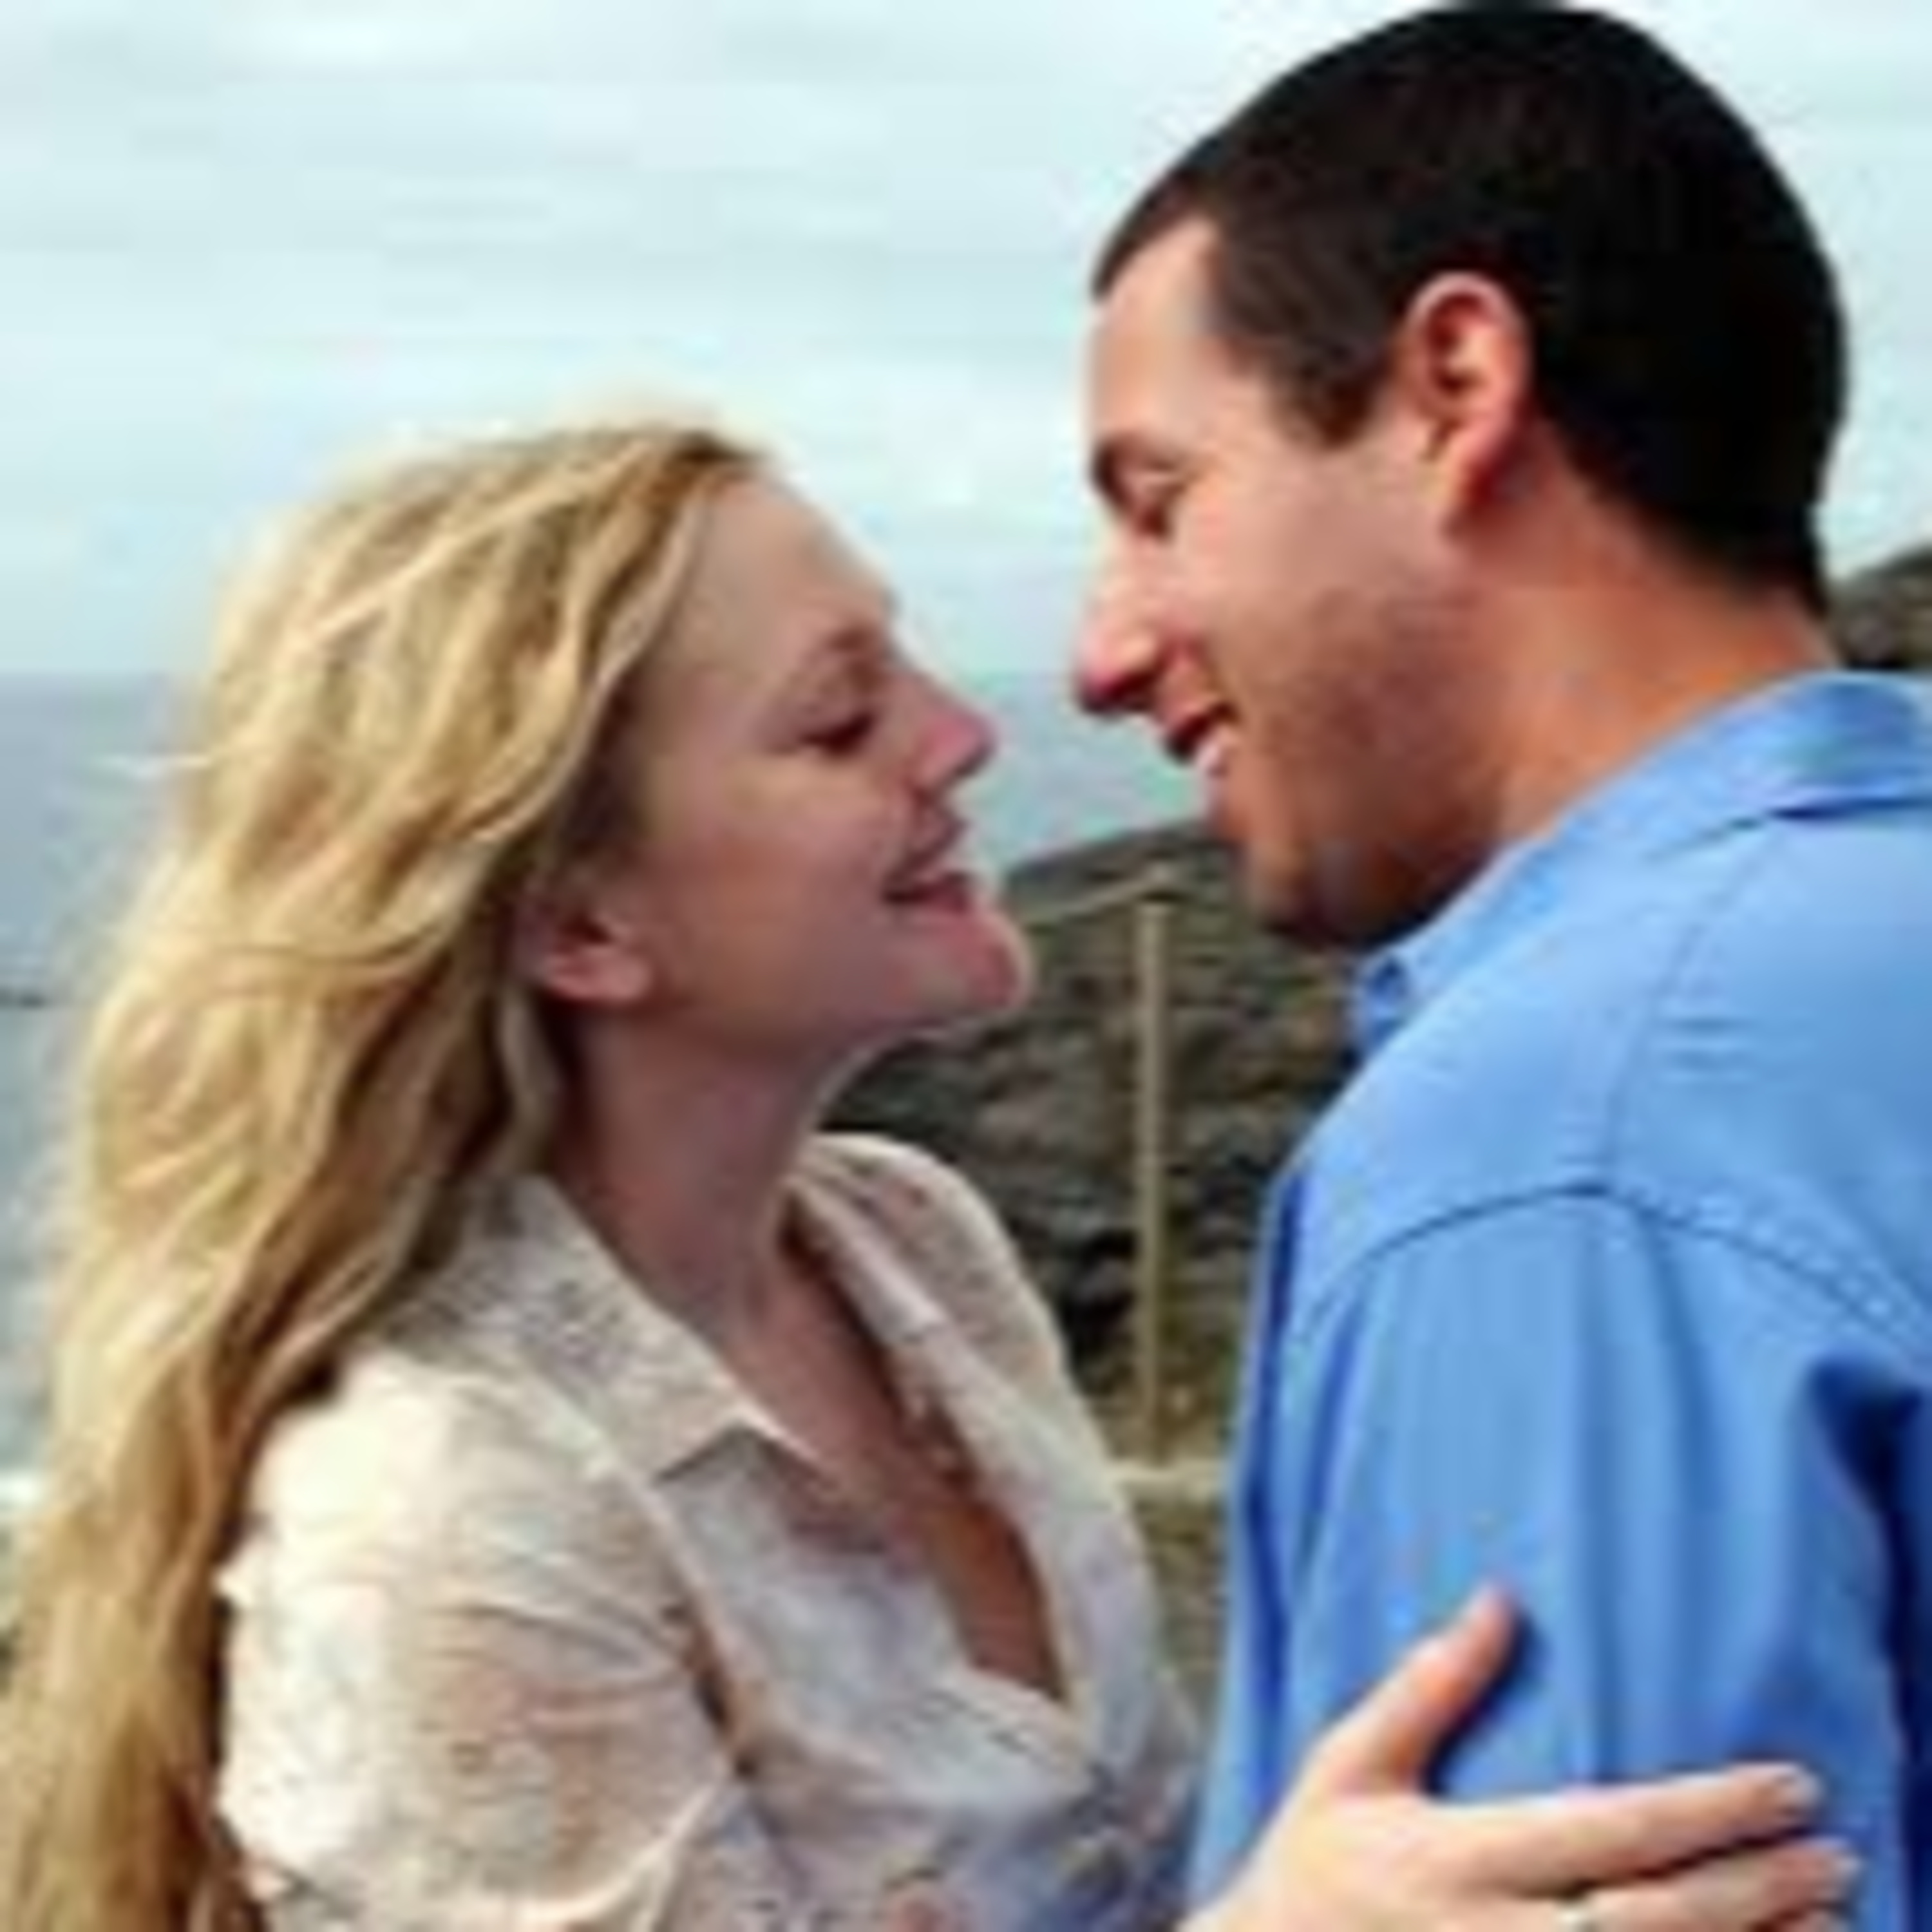 #116: 50 First Dates